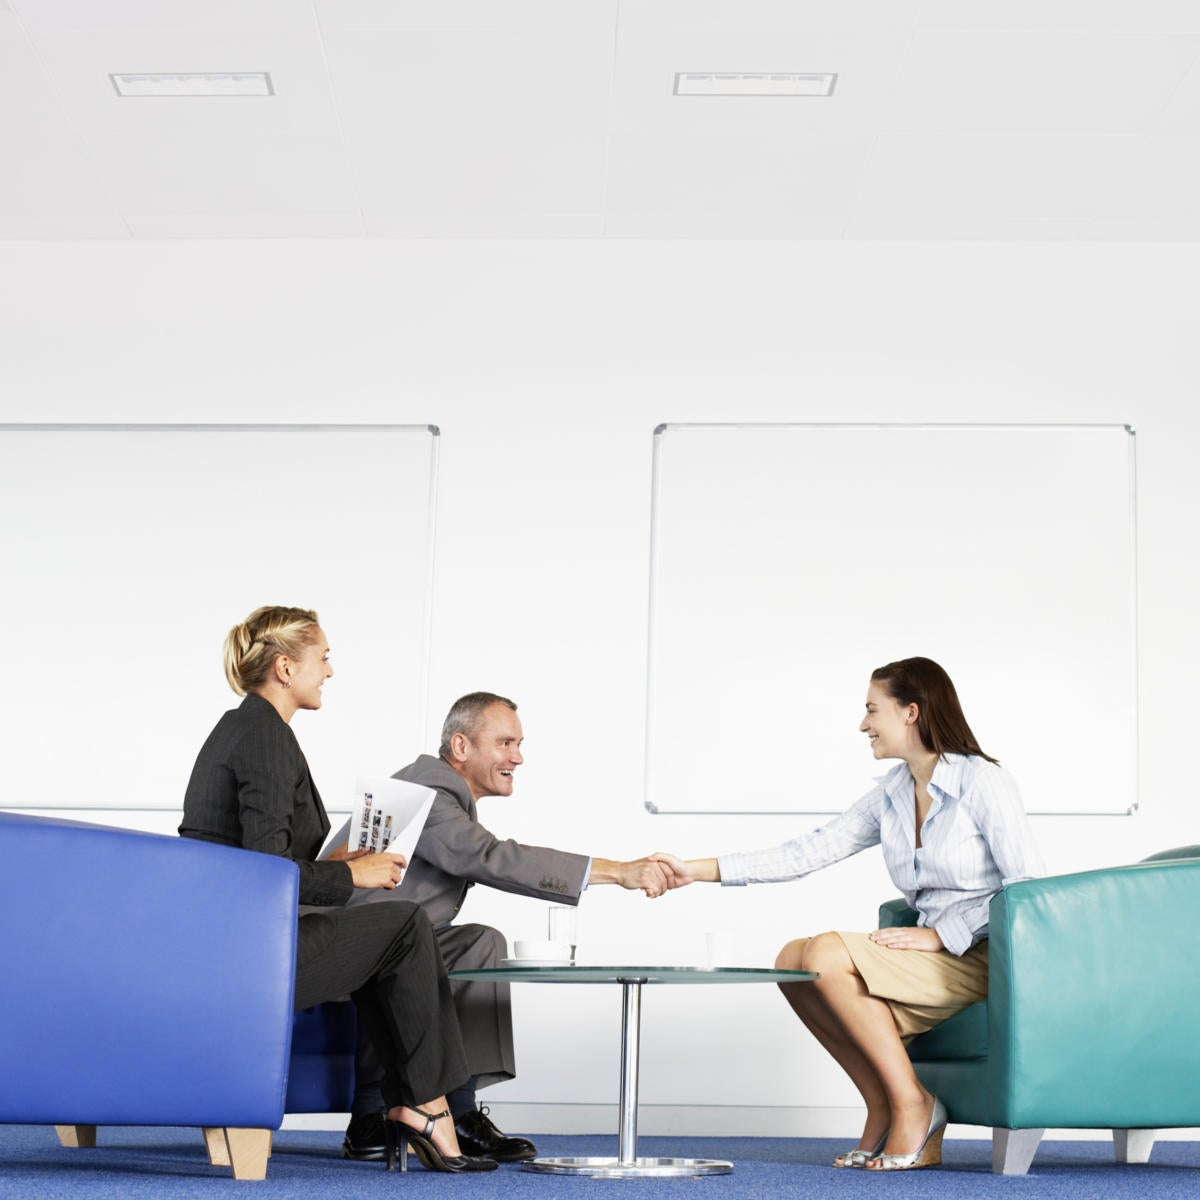 3 male and female executives sitting in office shaking hands and interviewing